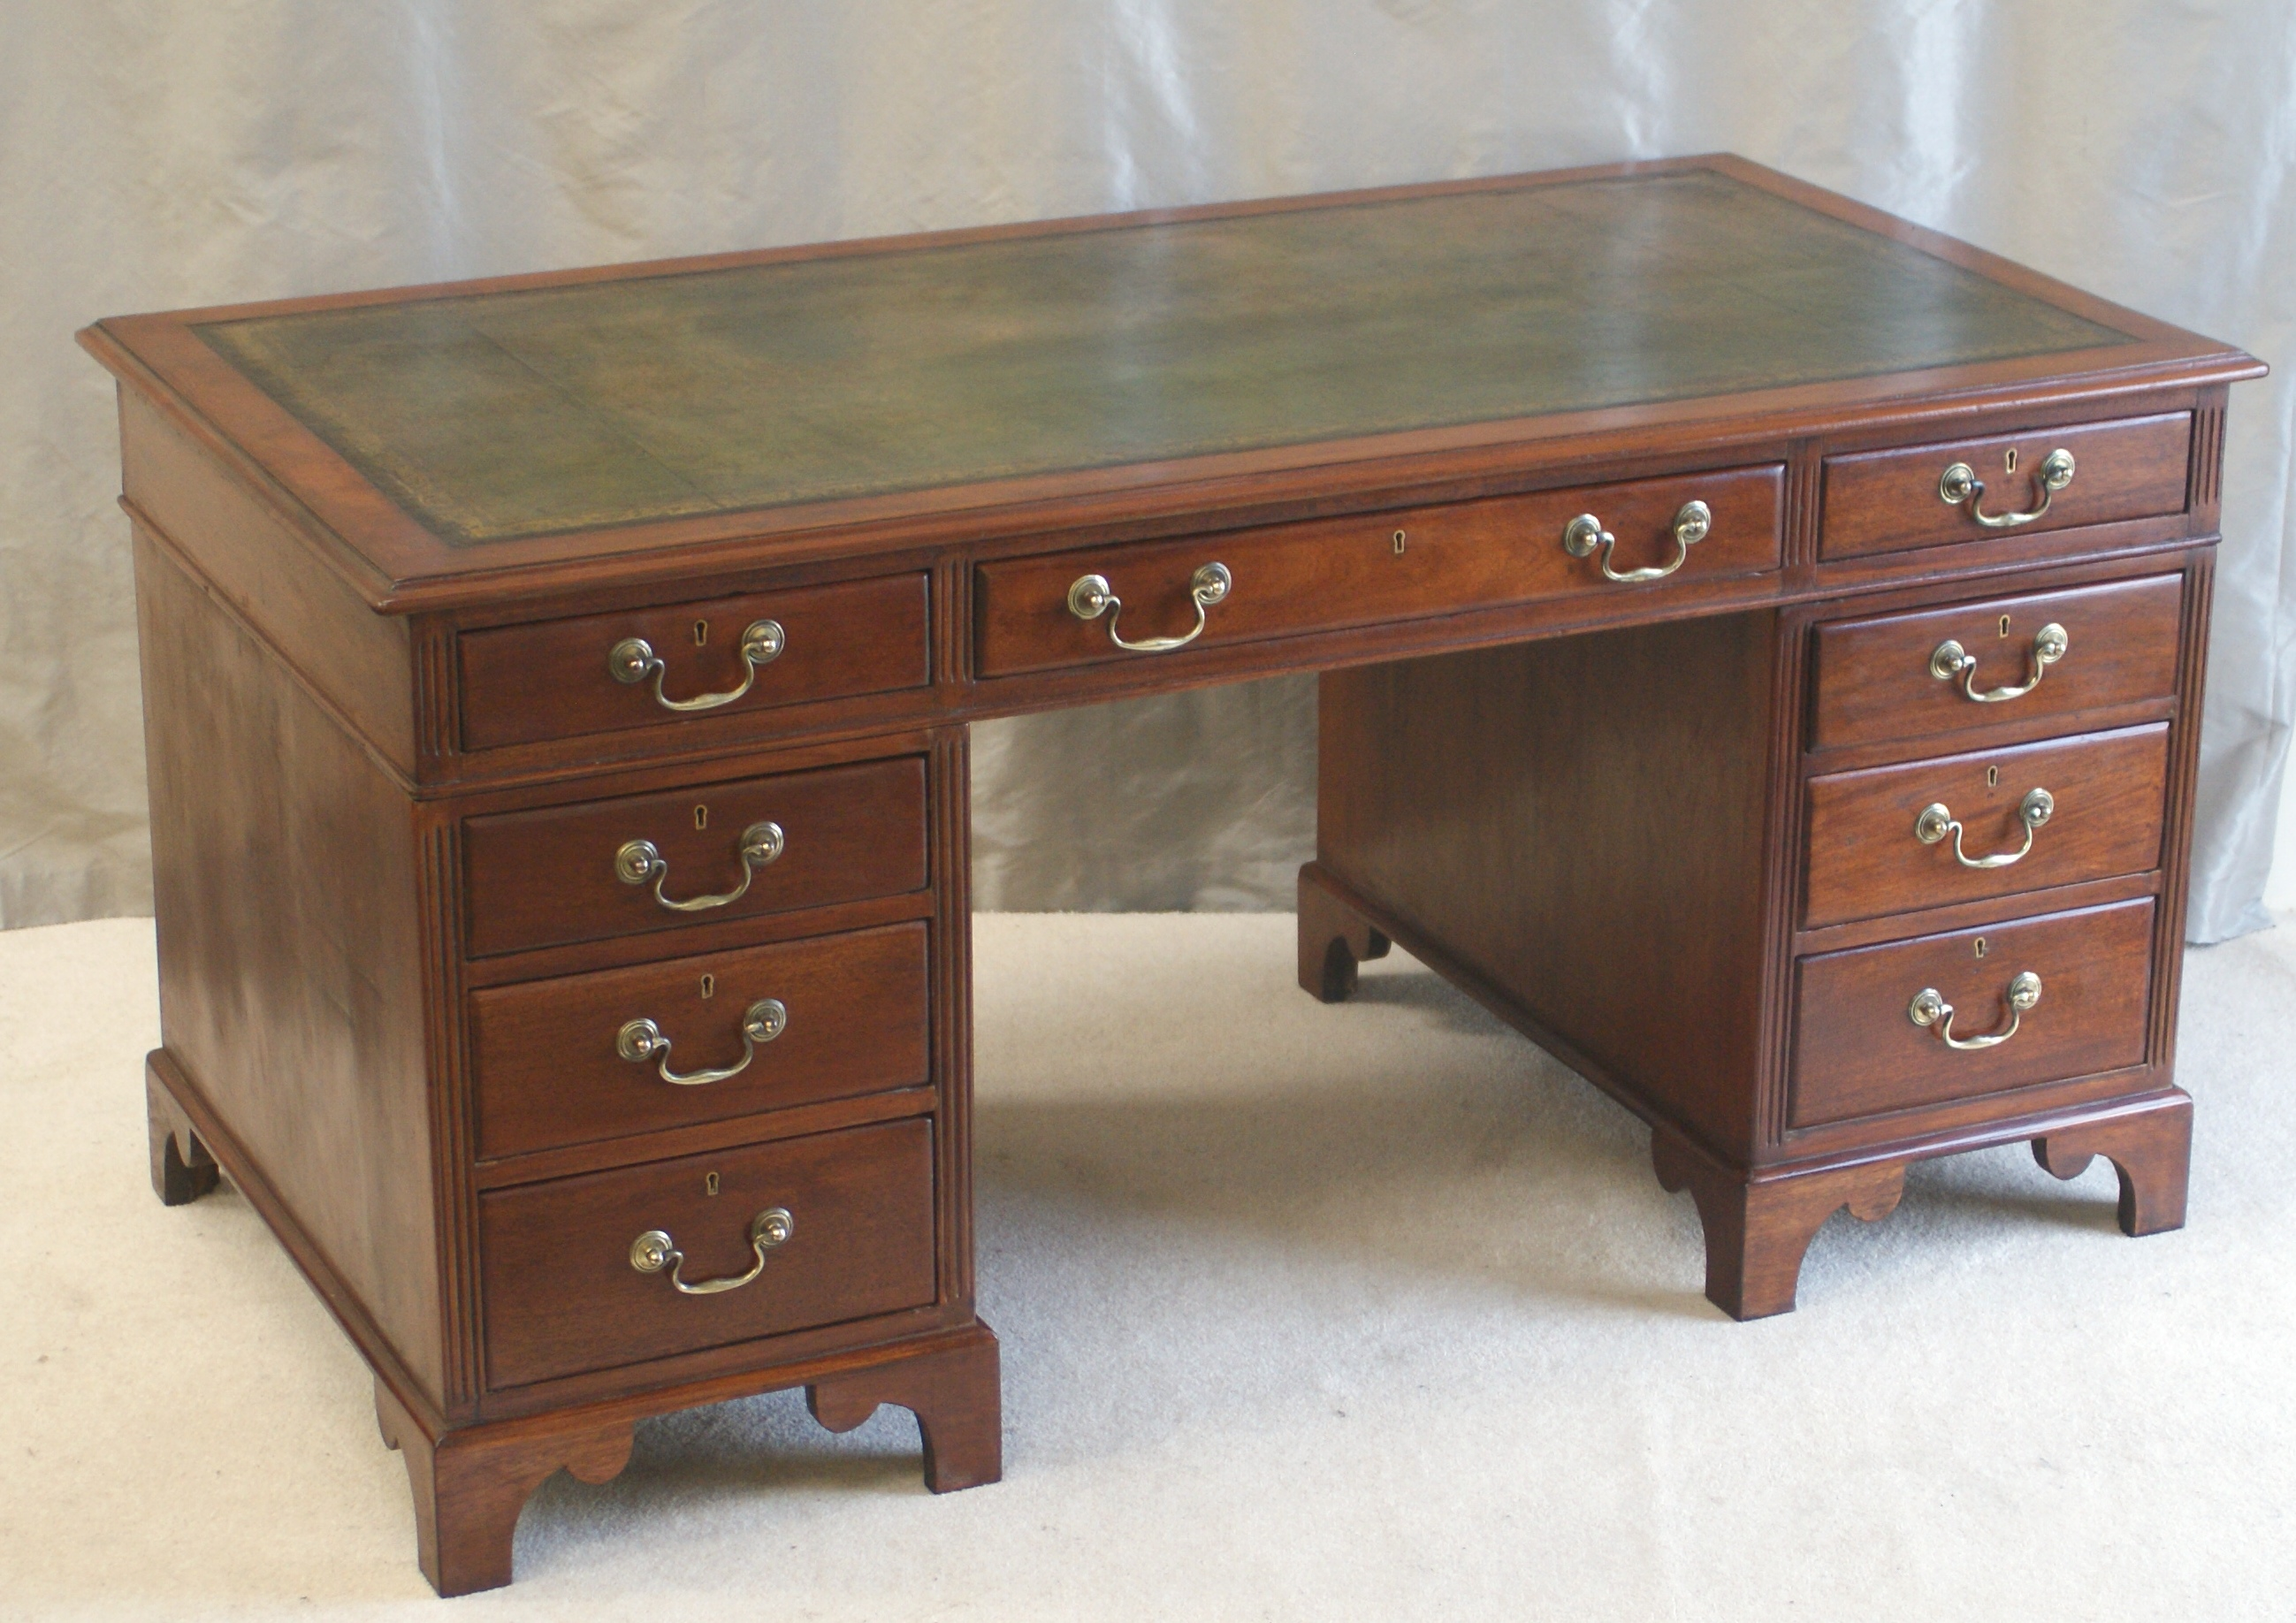 office library htm pedestal slope regency uk furniture fitted table mahogany period writing desks original antique desk with